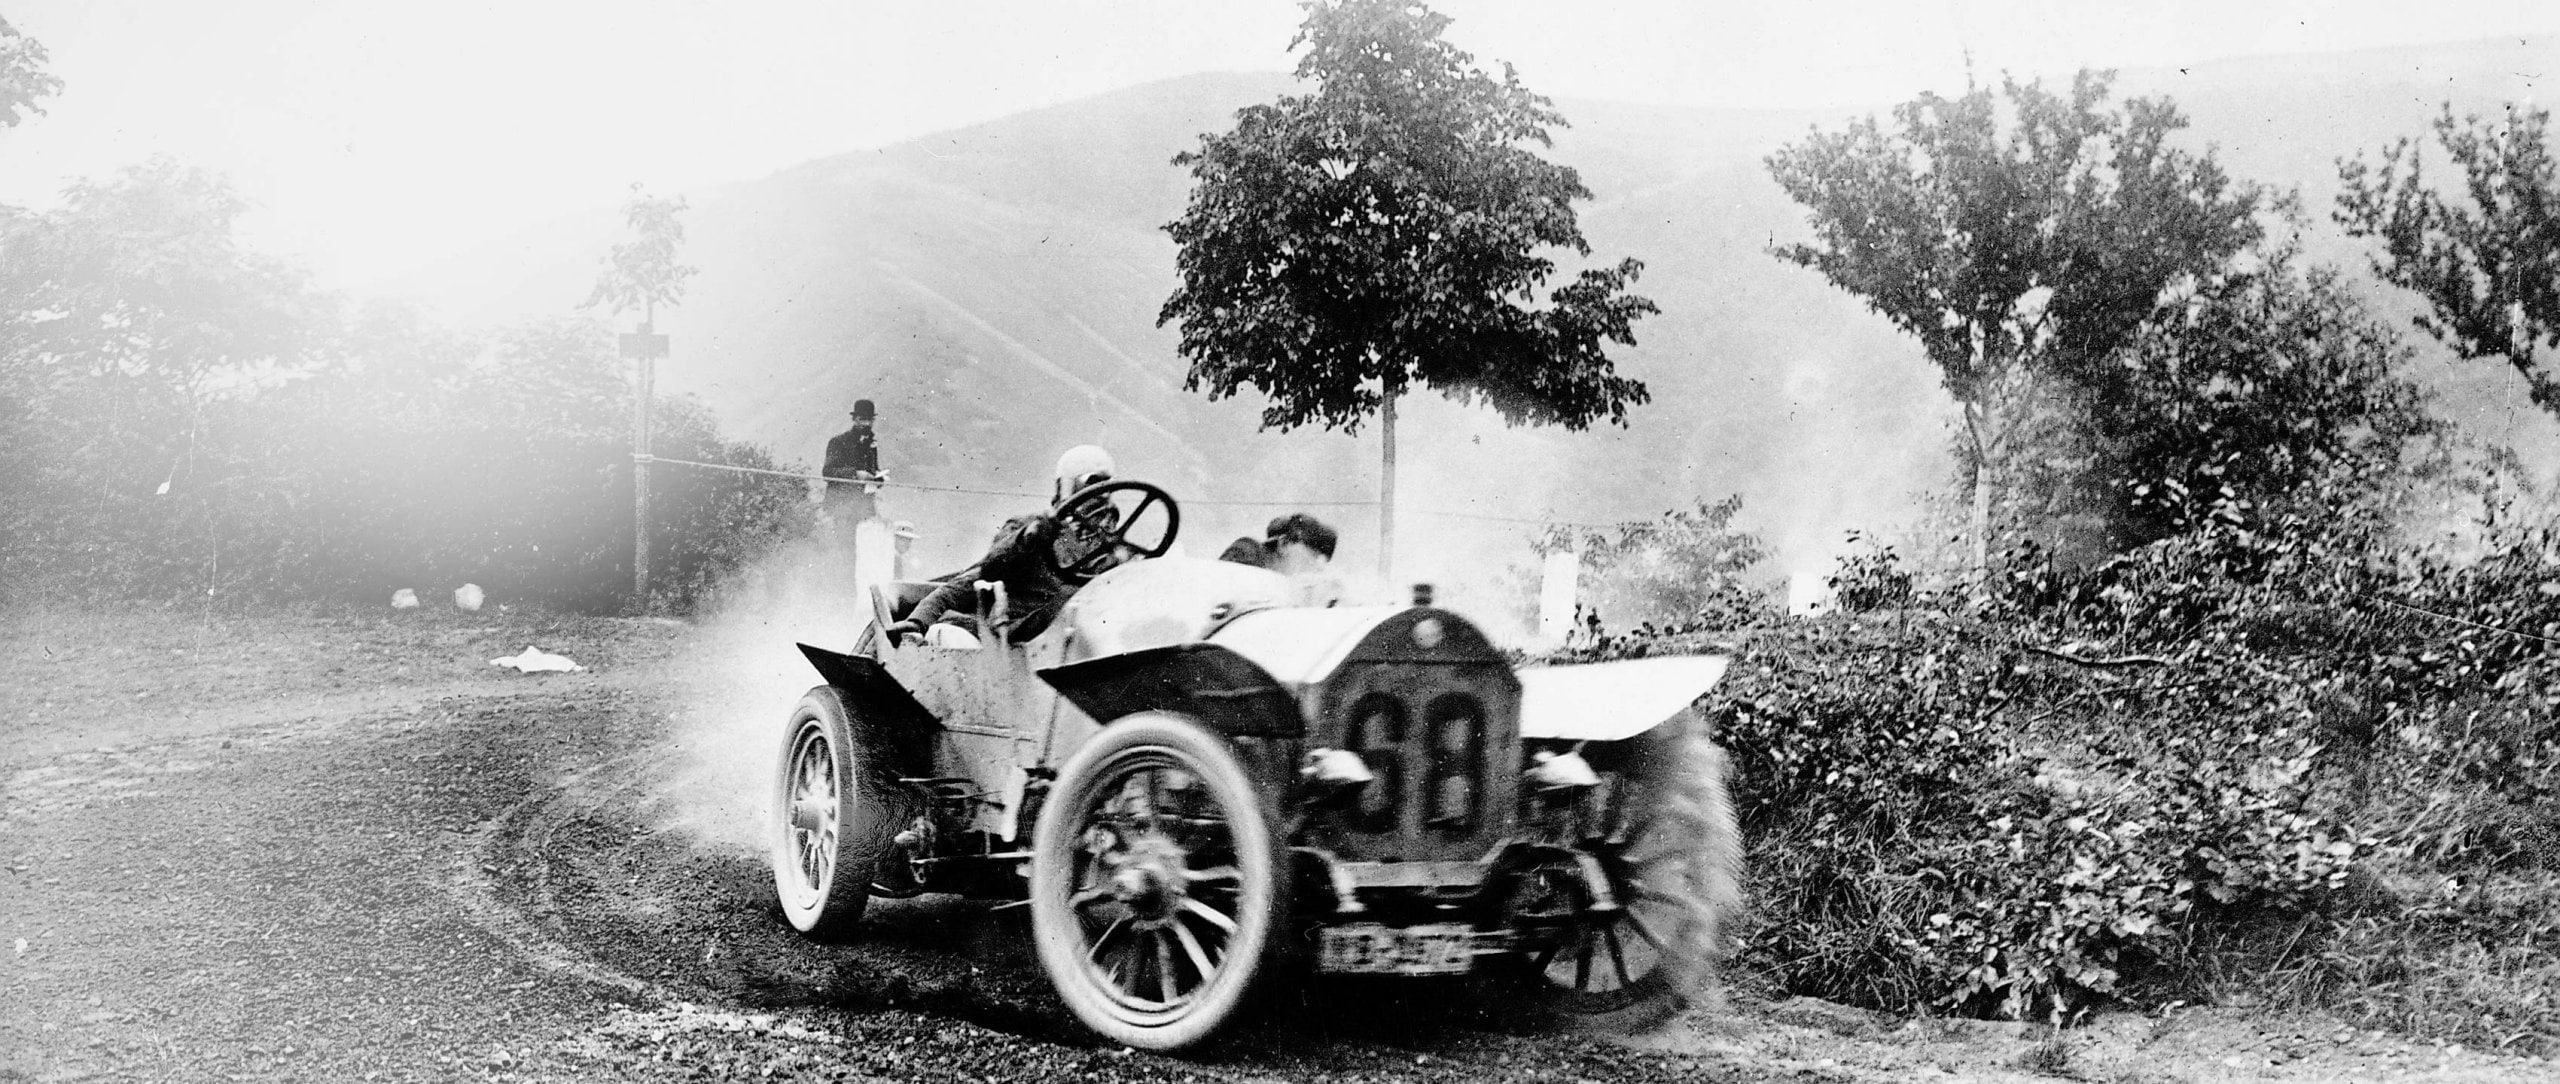 Fritz Erle (number 68) won the first Prince Heinrich Tour in a 50 PS Benz special touring car. The tour covered 2201 kilometres from 9 to 17 June 1908, taking place in Berlin, Stettin, Kiel, Hamburg, Hanover, Cologne and Trier on the way to Frankfurt/Main.